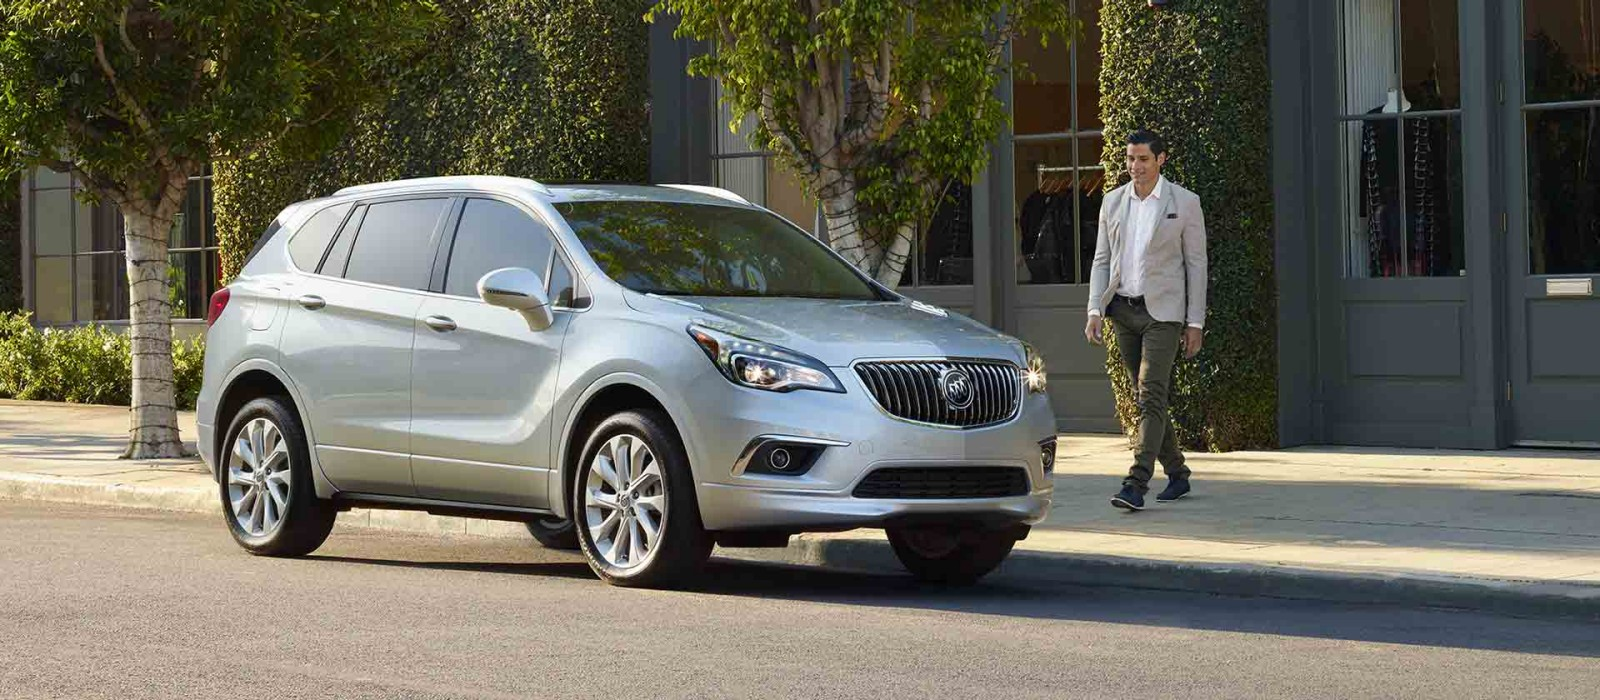 New Buick Envision   Buy  Lease  or Finance   Gainesville  FL 32609 New Buick Envision for Sale Gainesville FL